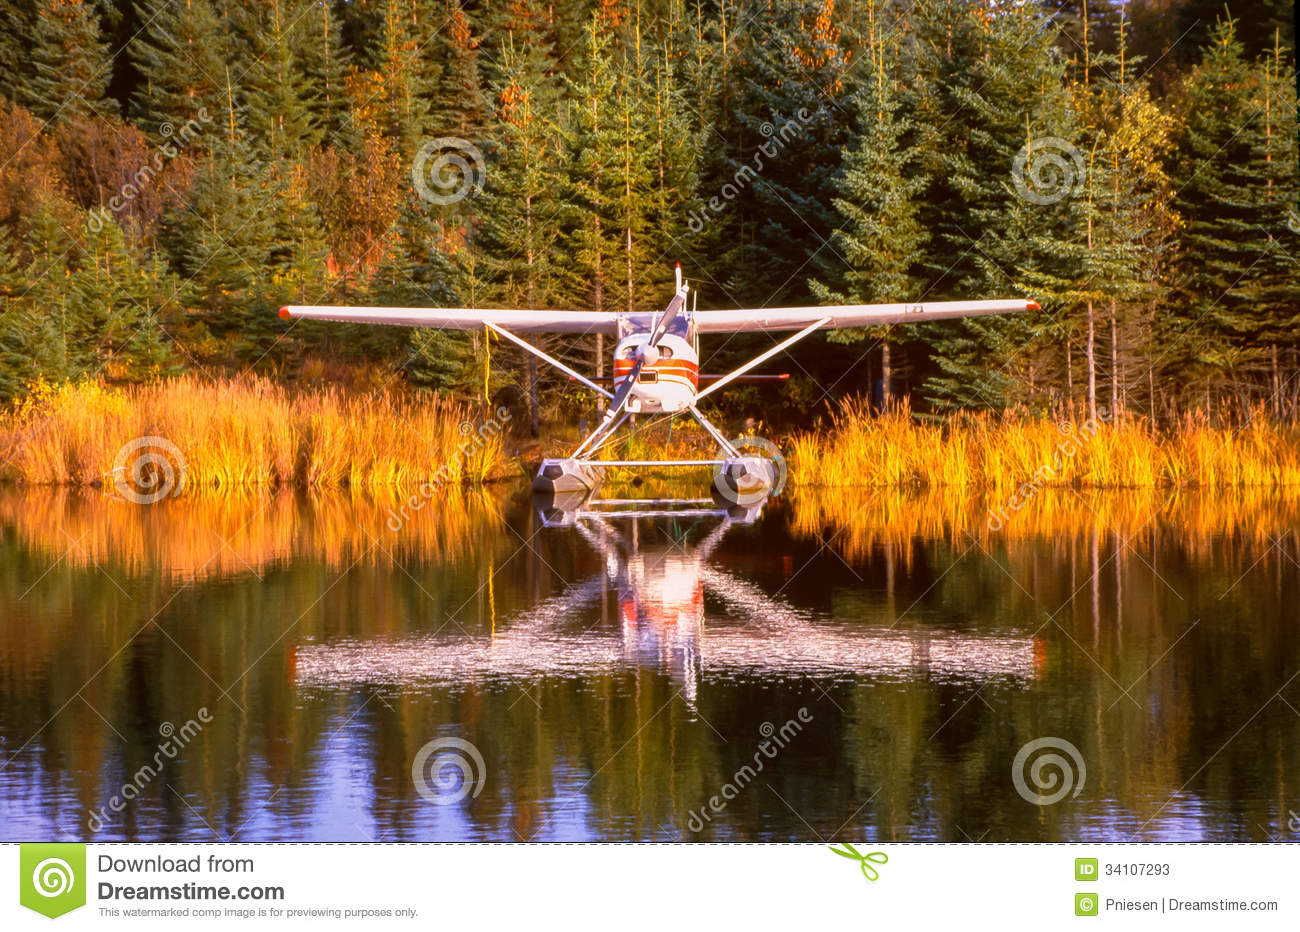 Fall Landscape Free Wallpaper Alaska Float Plane Moored At Dock Amid Foliage Reflections